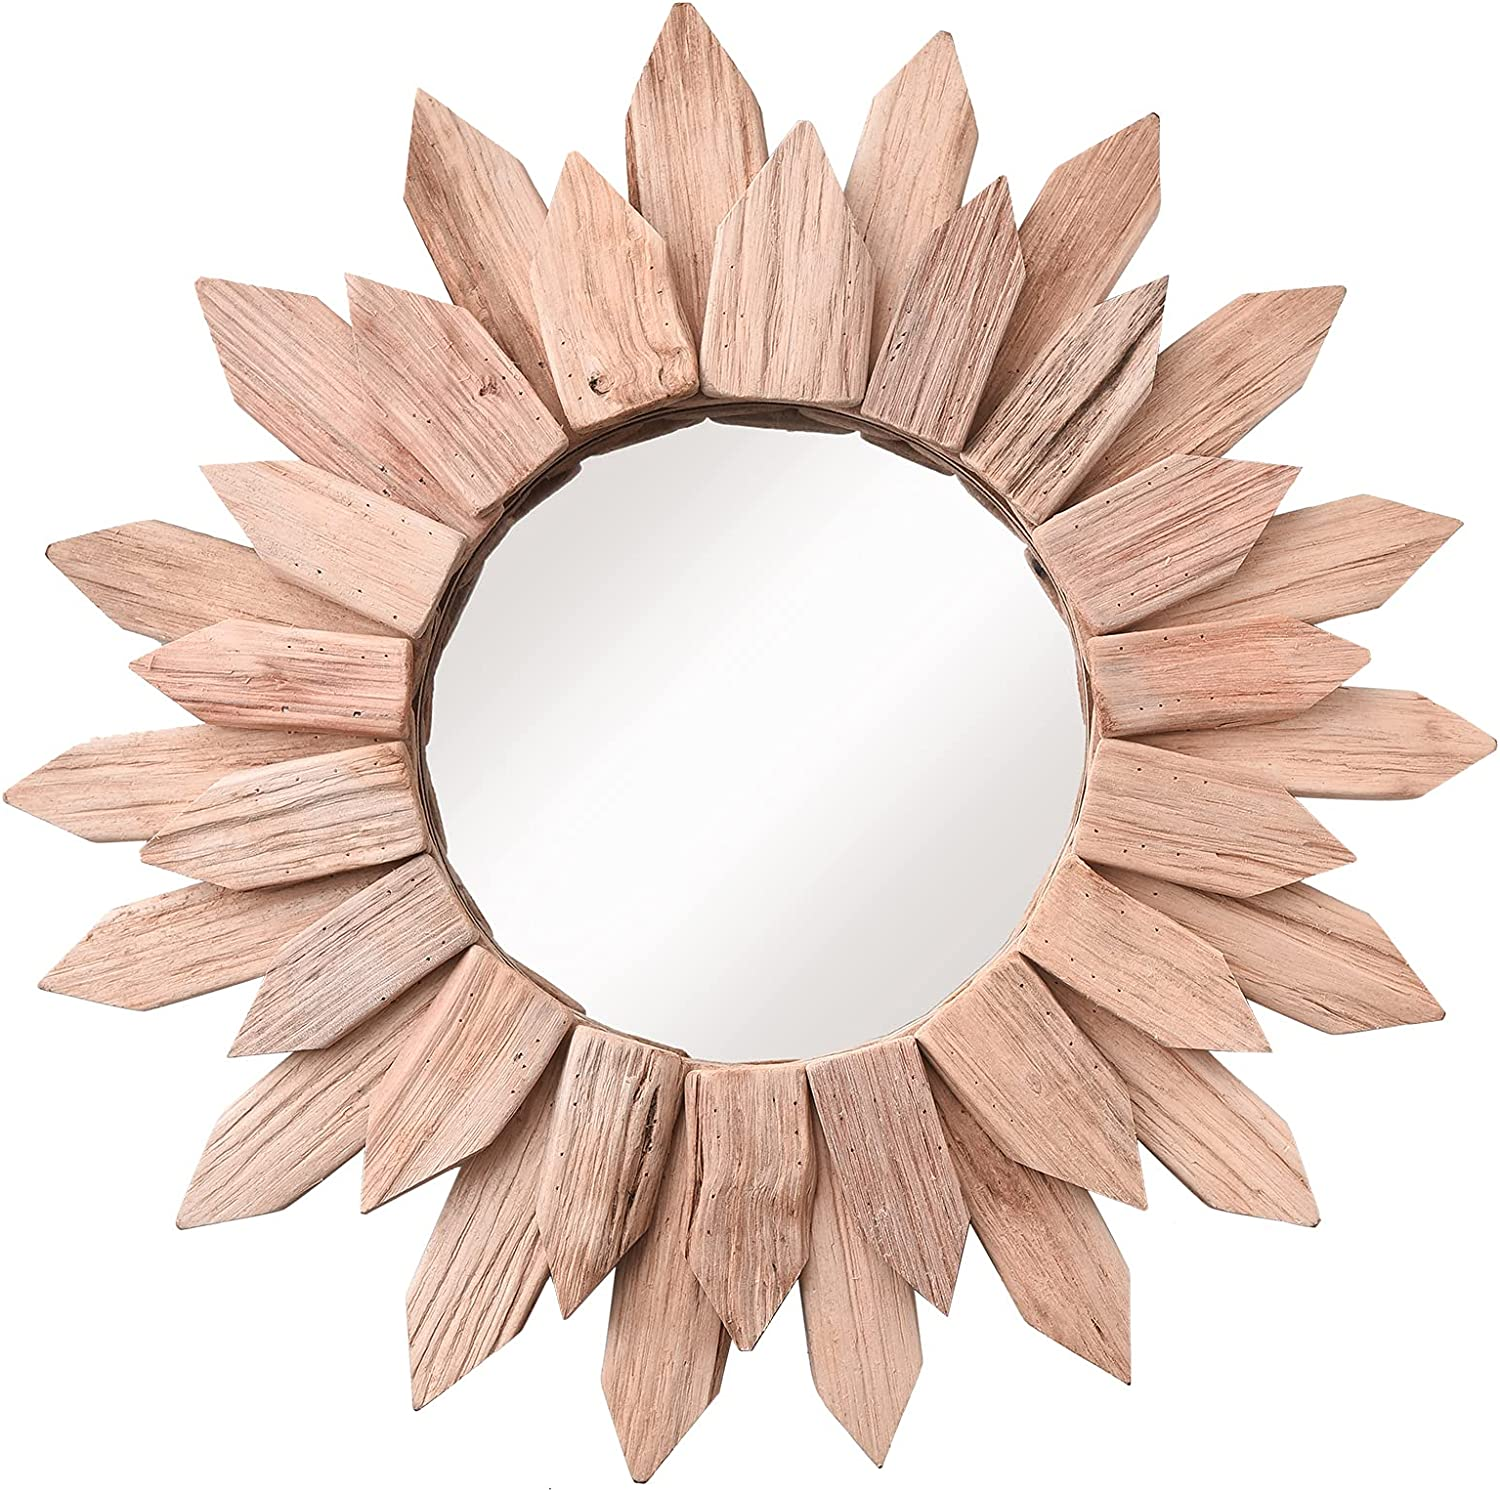 Cityelf Now on sale Discount mail order Wooden Sunburst Mirror Wall for Decor Home Room